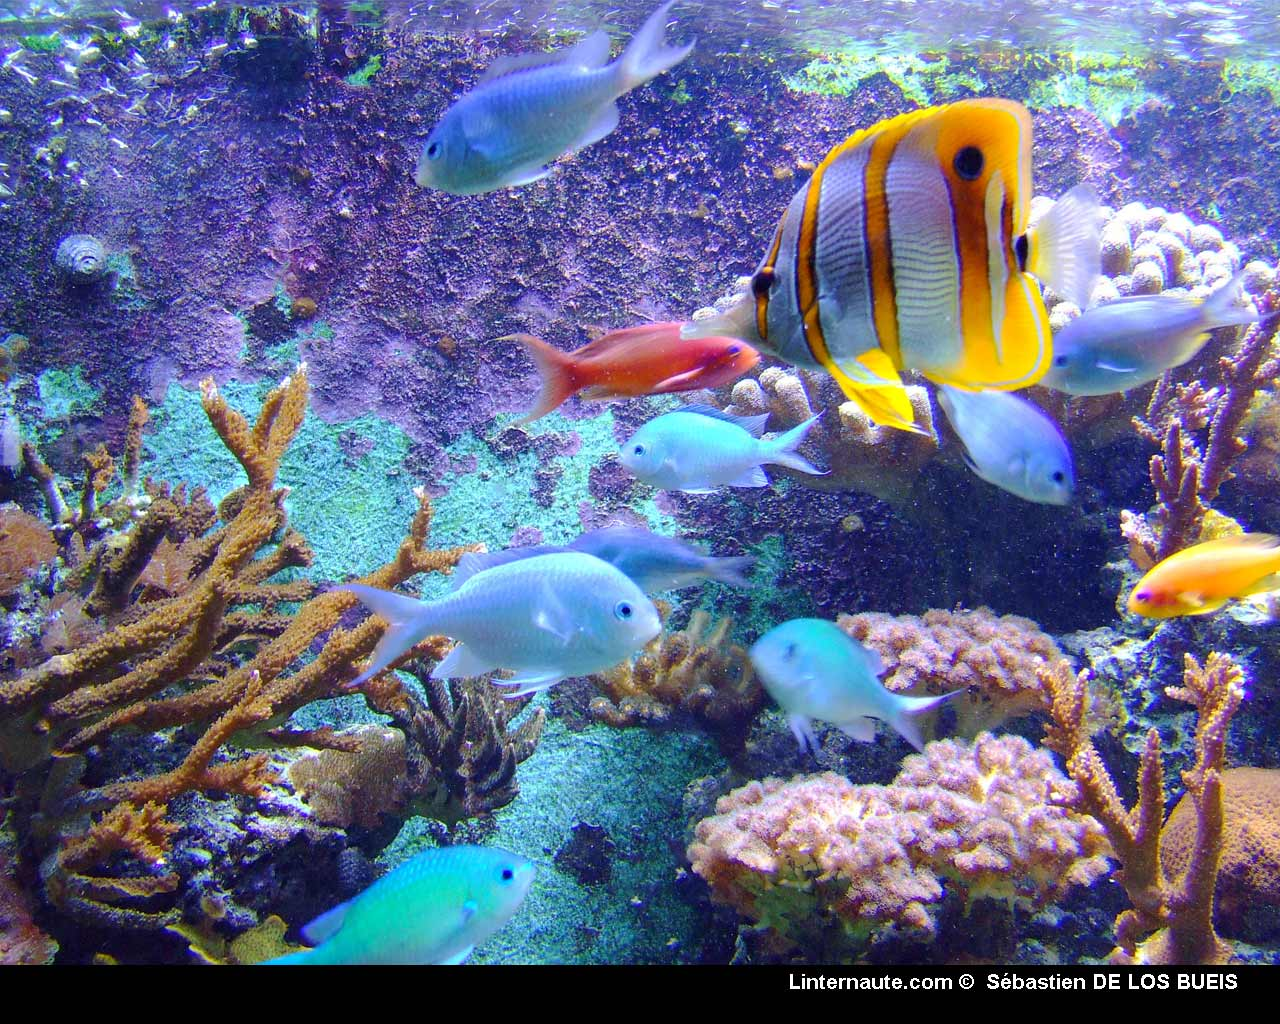 Desktop background fond d 39 cran anim et sonore gratuit for Fond ecran gratuit aquarium